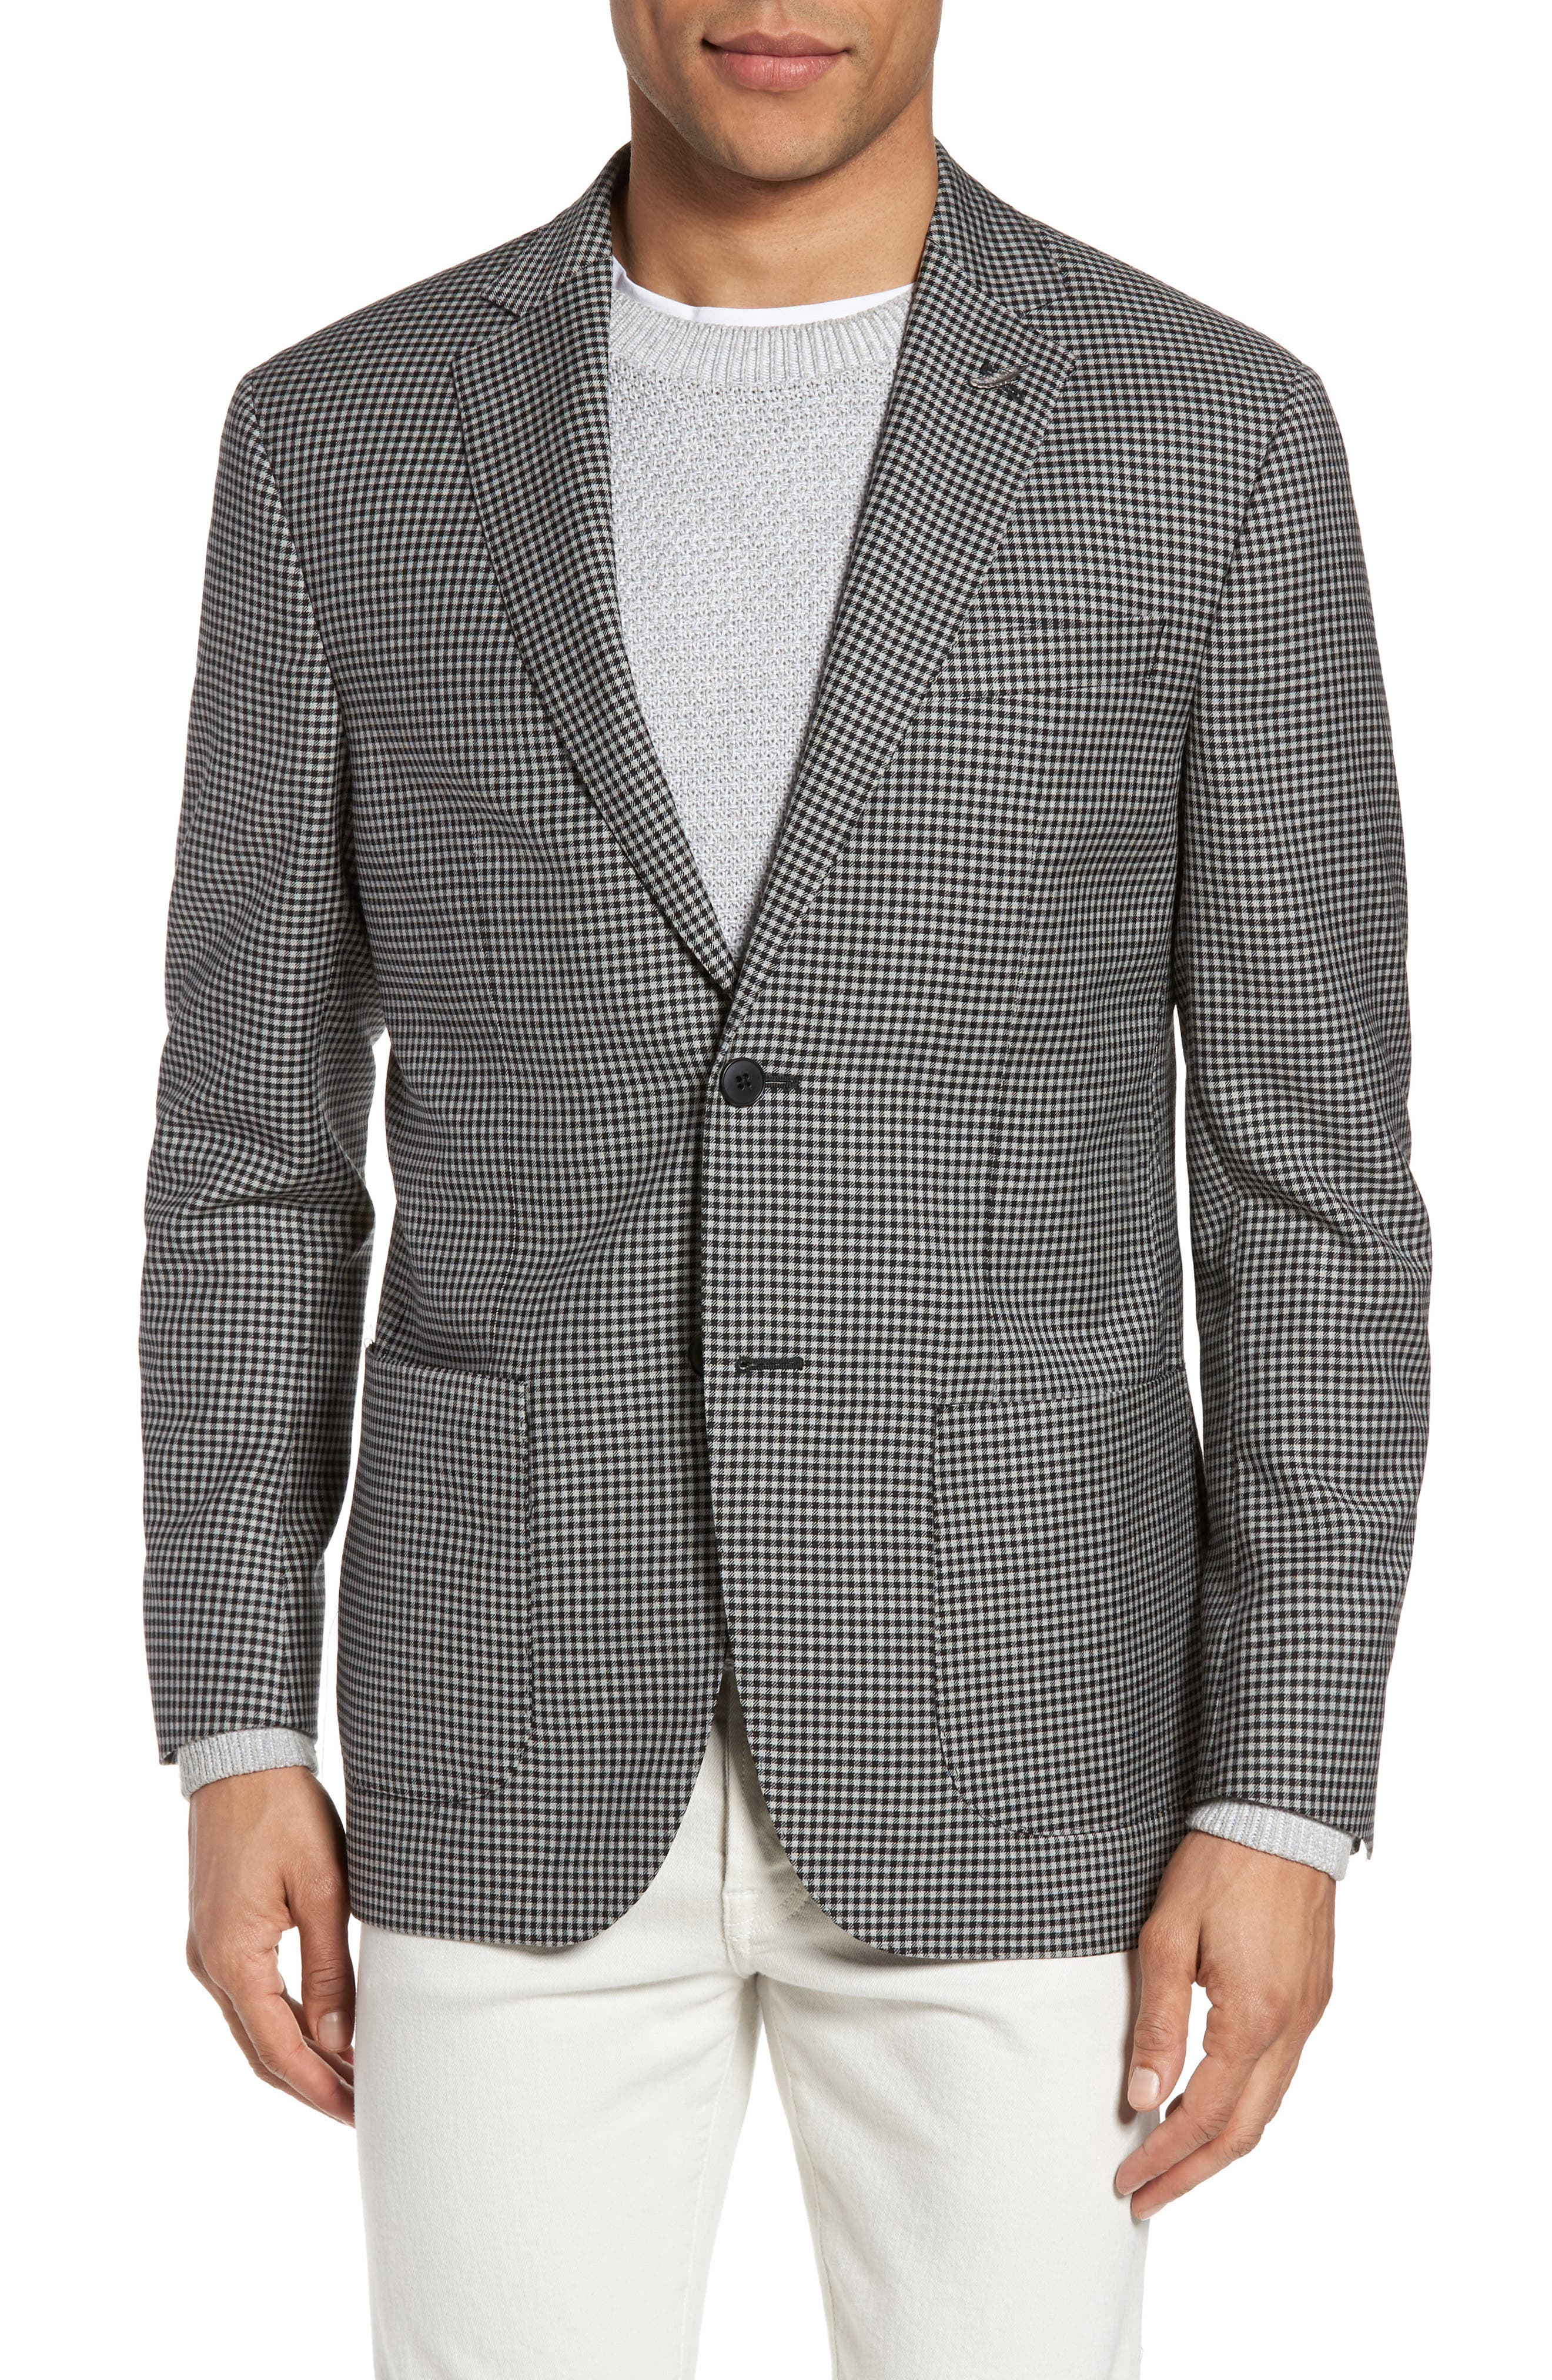 Classic Fit Check Wool Sport Coat,                         Main,                         color, Black/ White Small Check